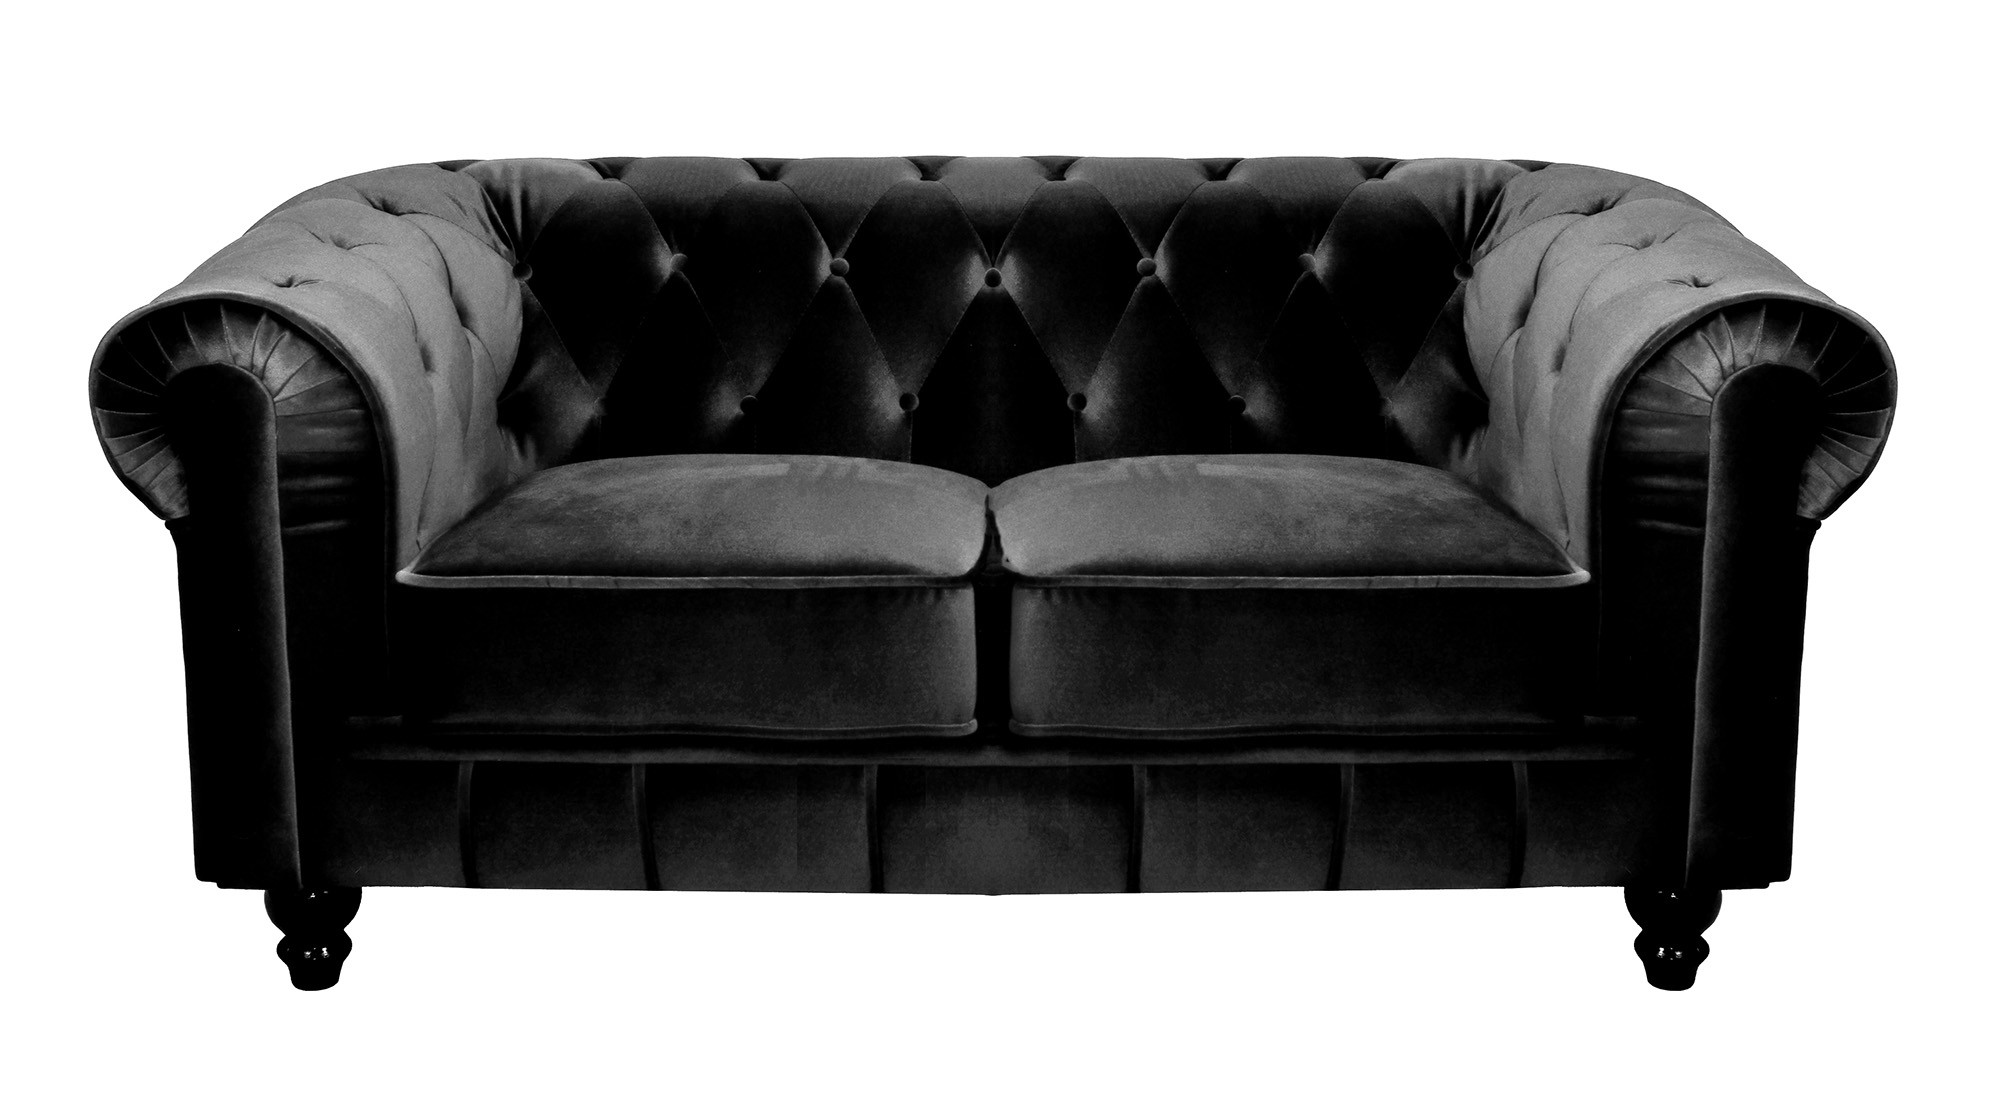 Canap chesterfield velours 2 places canap id es de d coration de maison - Canape chesterfield velour ...